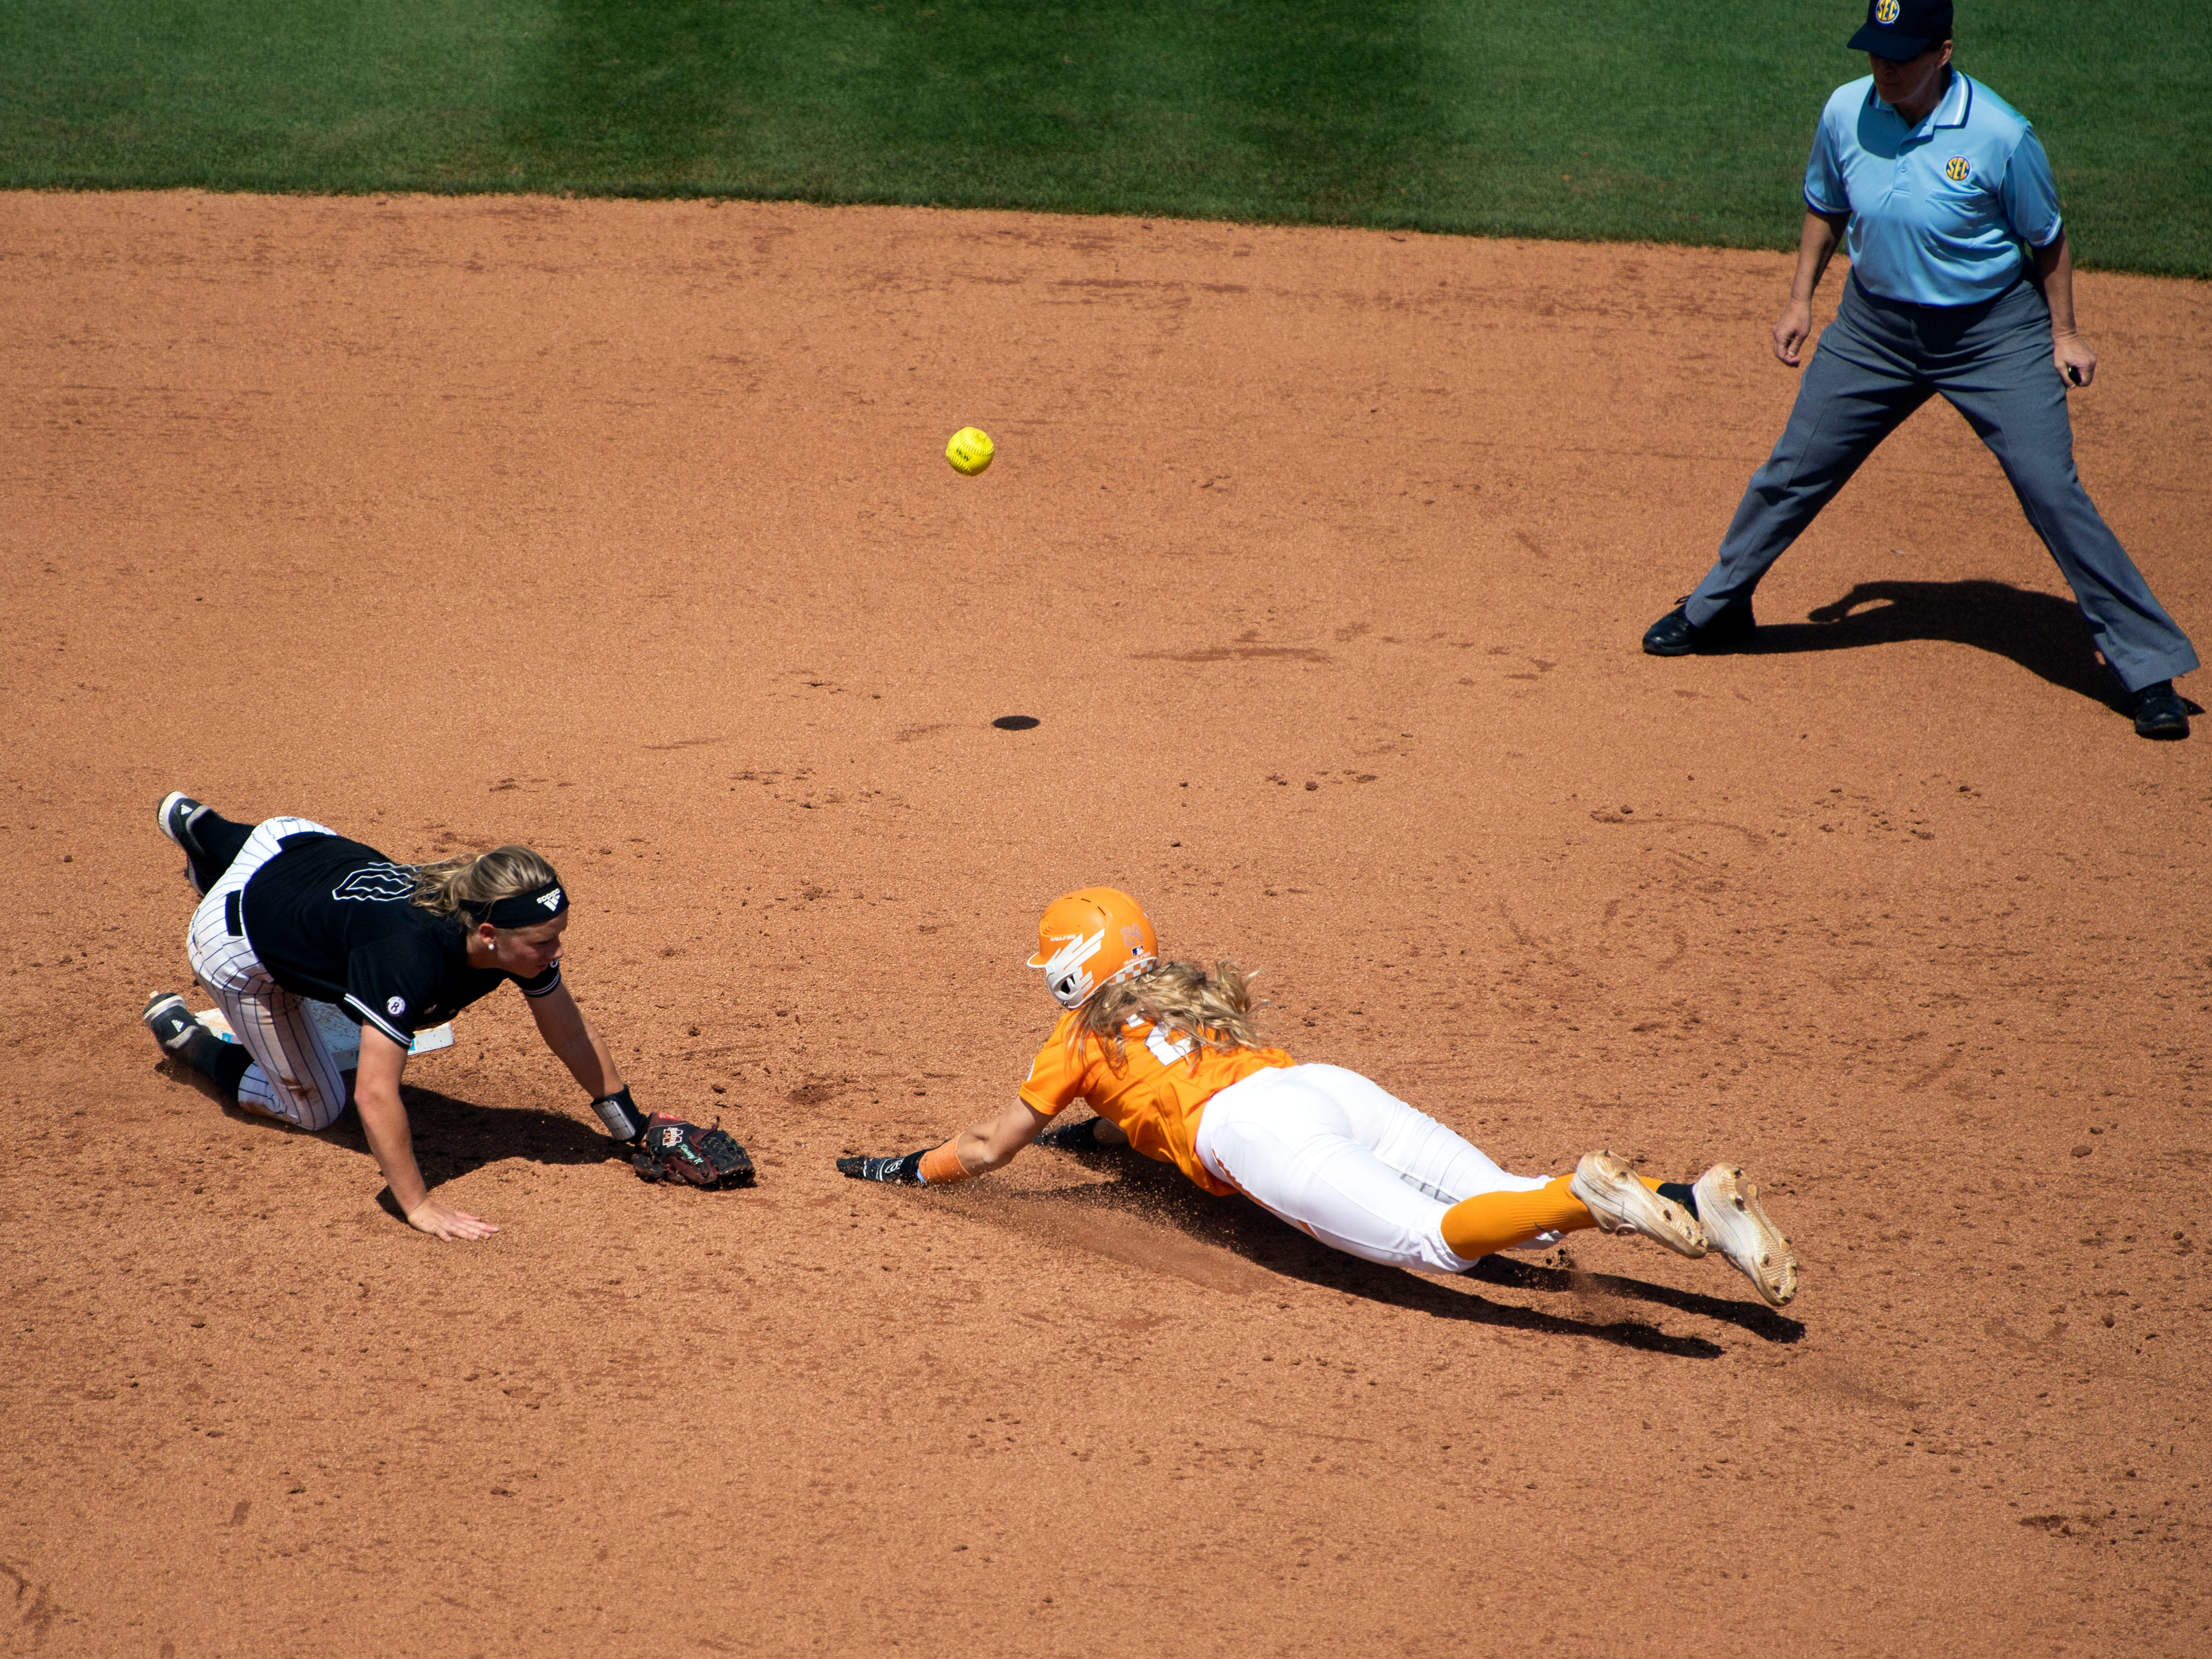 The ball flies past Mississippi State's Kinsey Goelz (10) and Tennessee's Cailin Hannon (24) slides safely to second base at Sherri Parker Lee Stadium on Sunday, April 14, 2019.